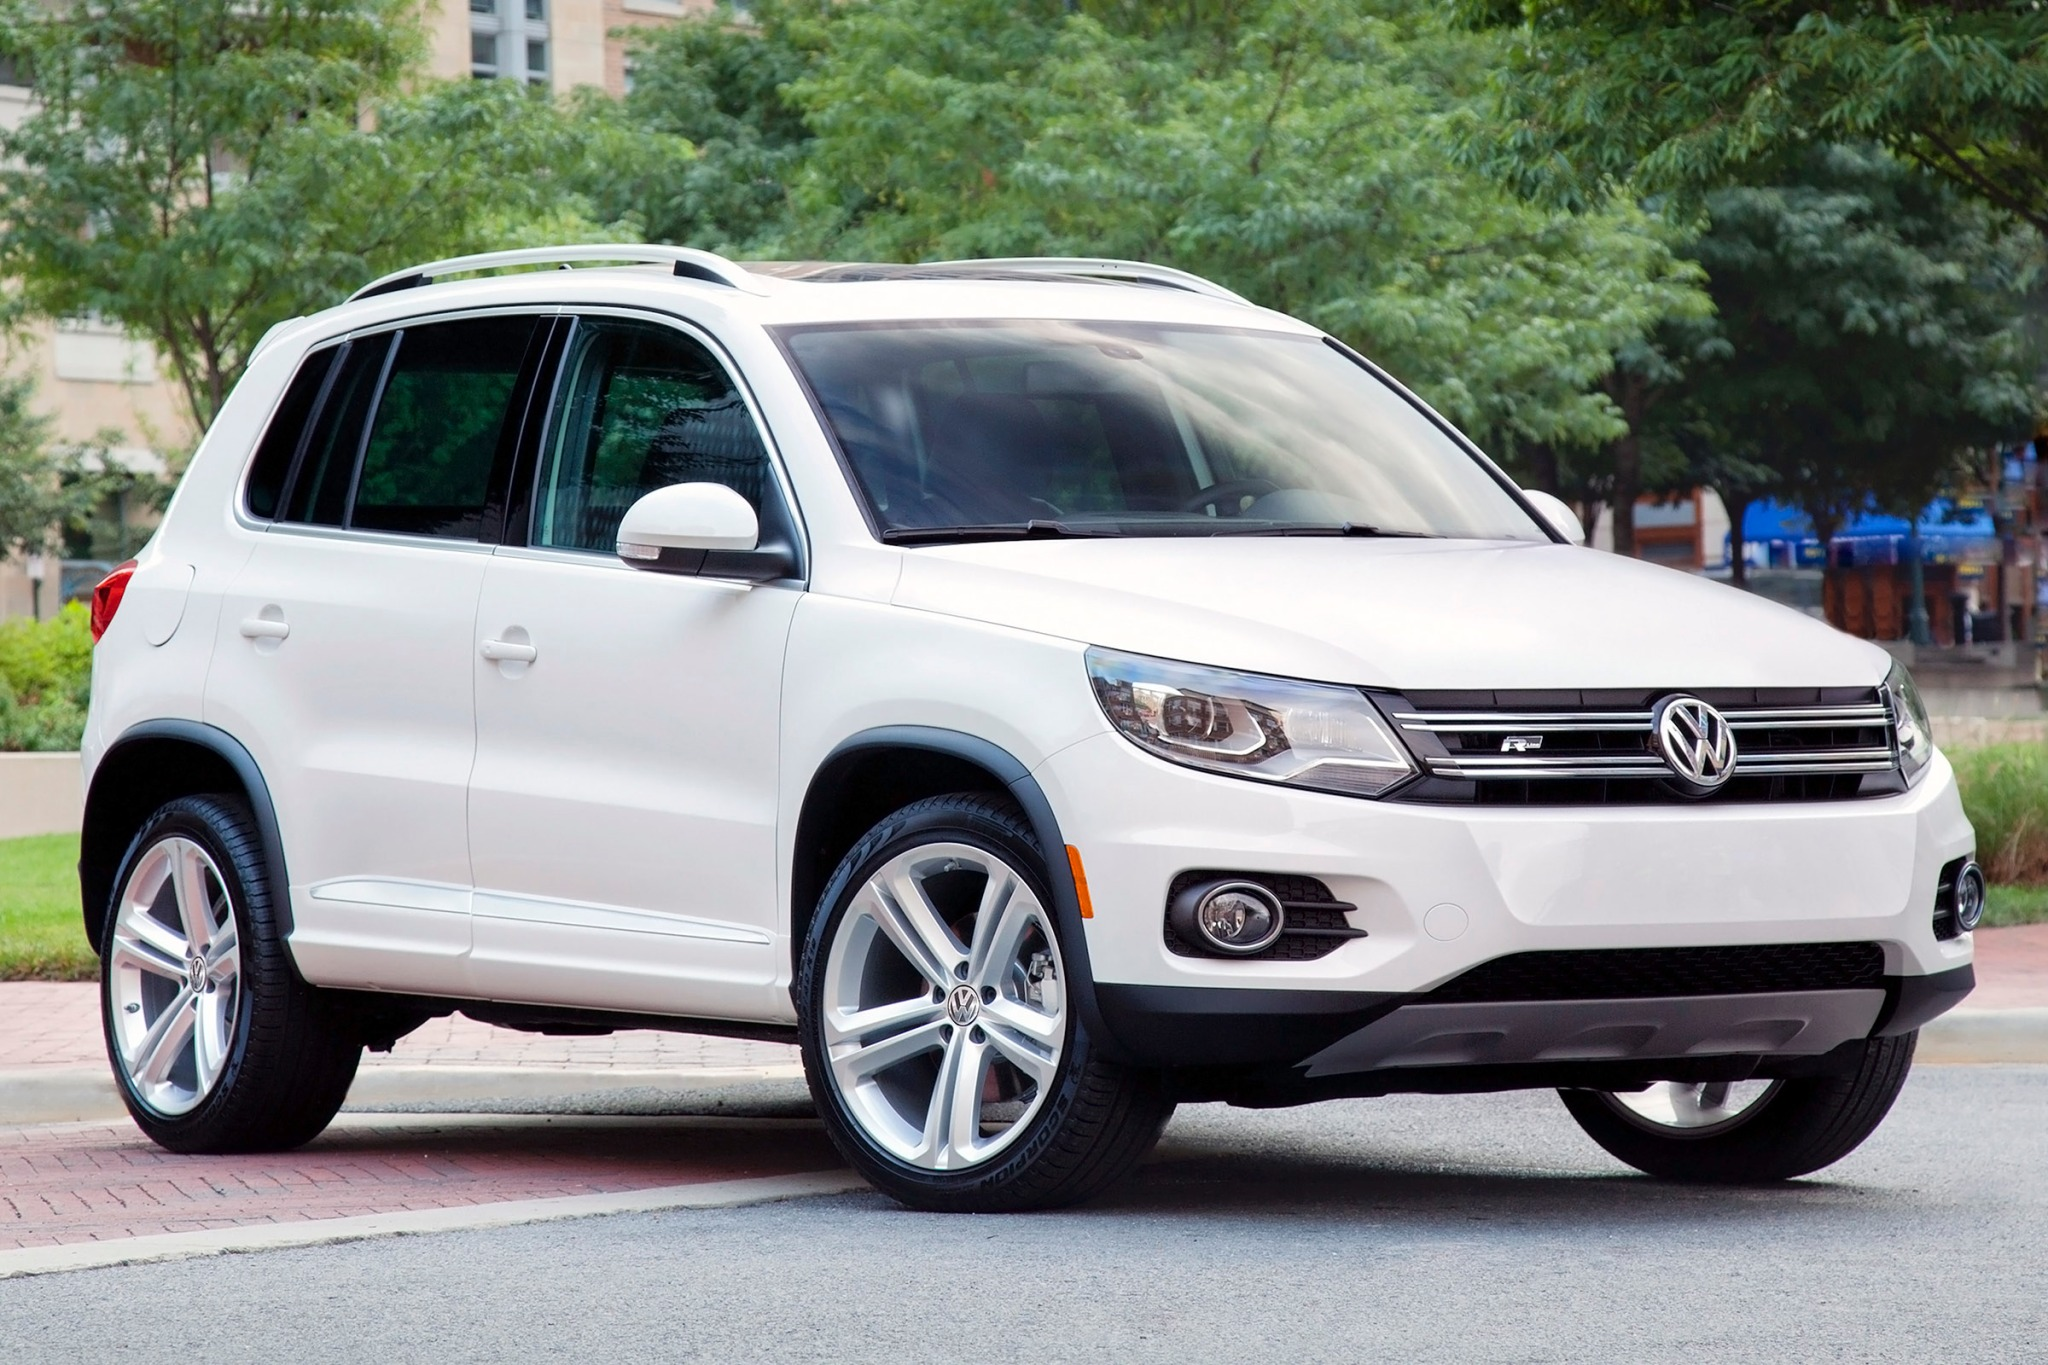 2015 volkswagen tiguan s vin number search autodetective. Black Bedroom Furniture Sets. Home Design Ideas